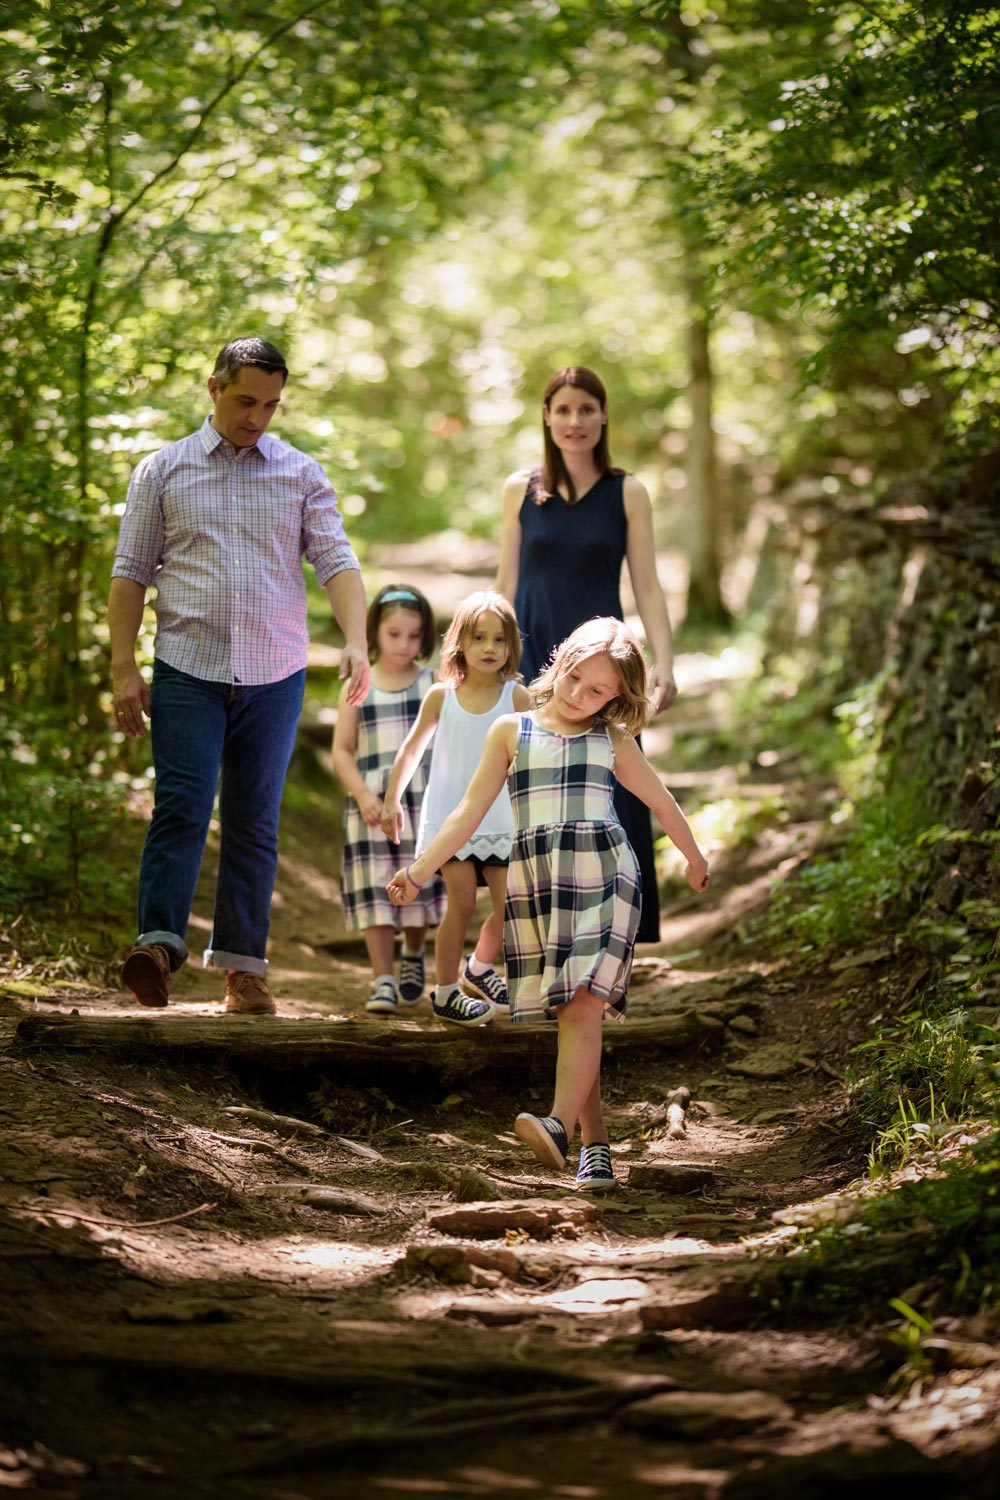 family_photography_by_Scott_Walz_studio_walz_Lexington_Ky067.jpg